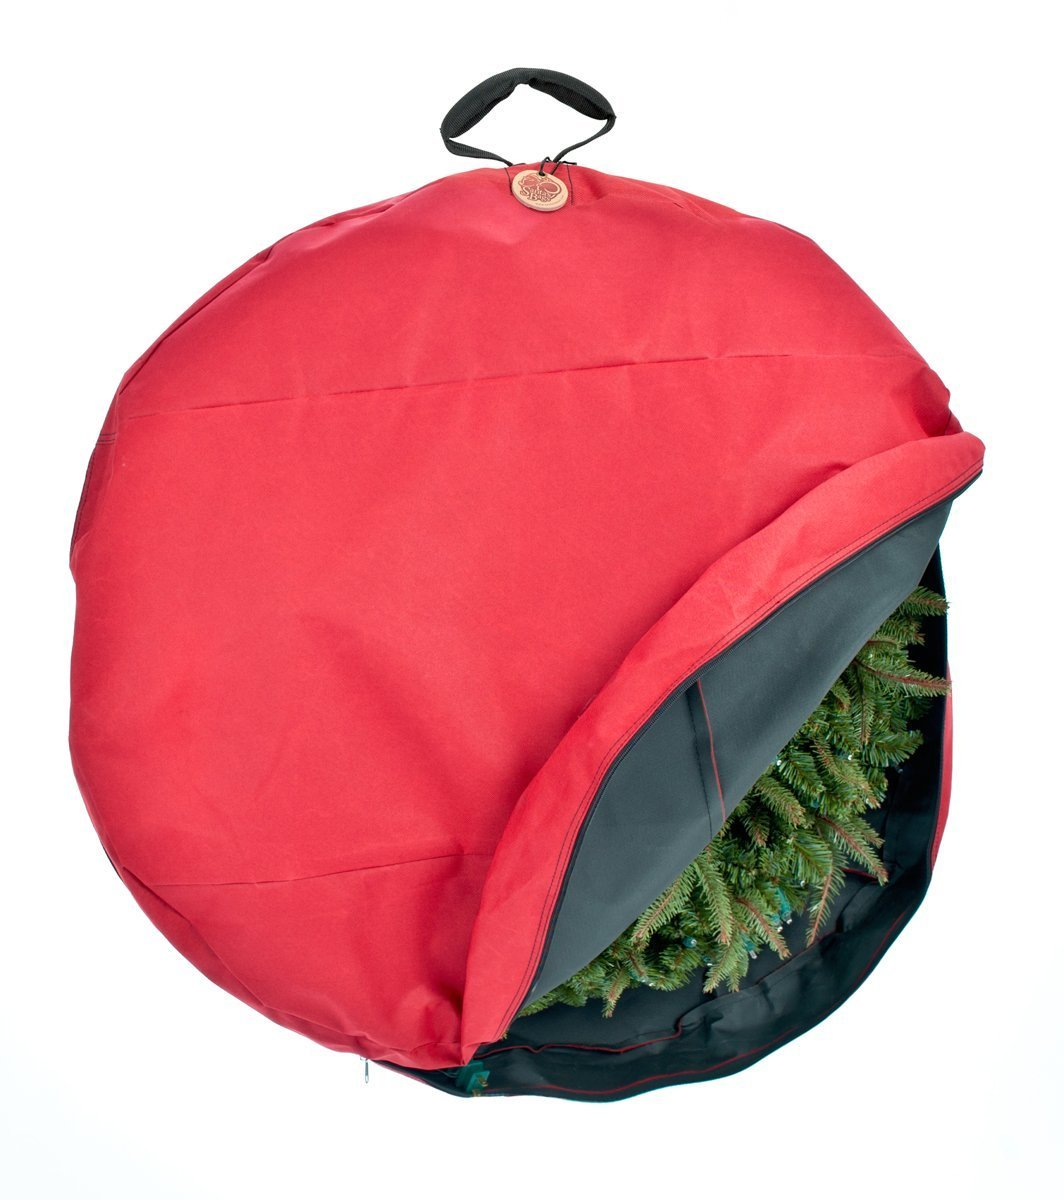 TreeKeeper Wreath Storage Bag with Direct Suspend Handle, Red, 24-Inch by TreeKeeper